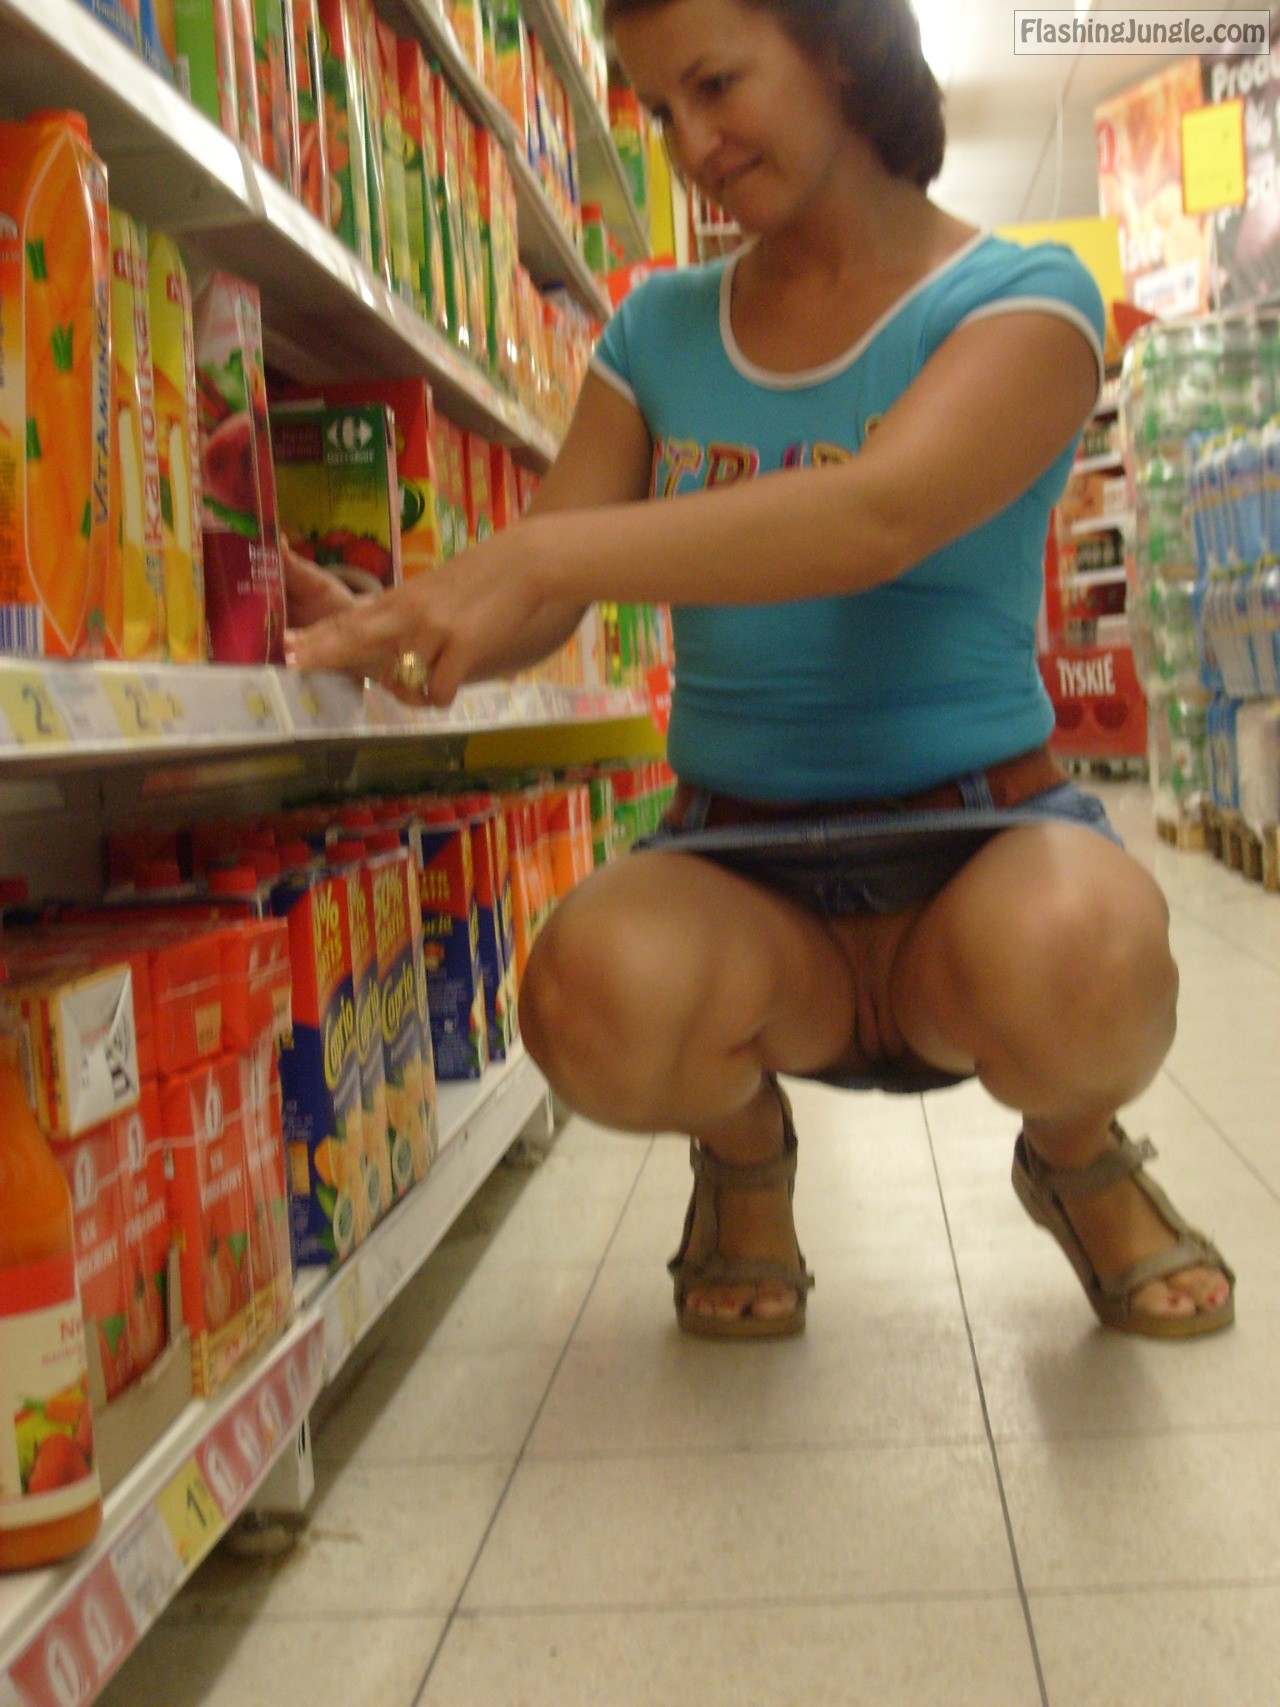 Pantieless wife with juicy pussy among store shelves upskirt pussy flash no panties flashing store